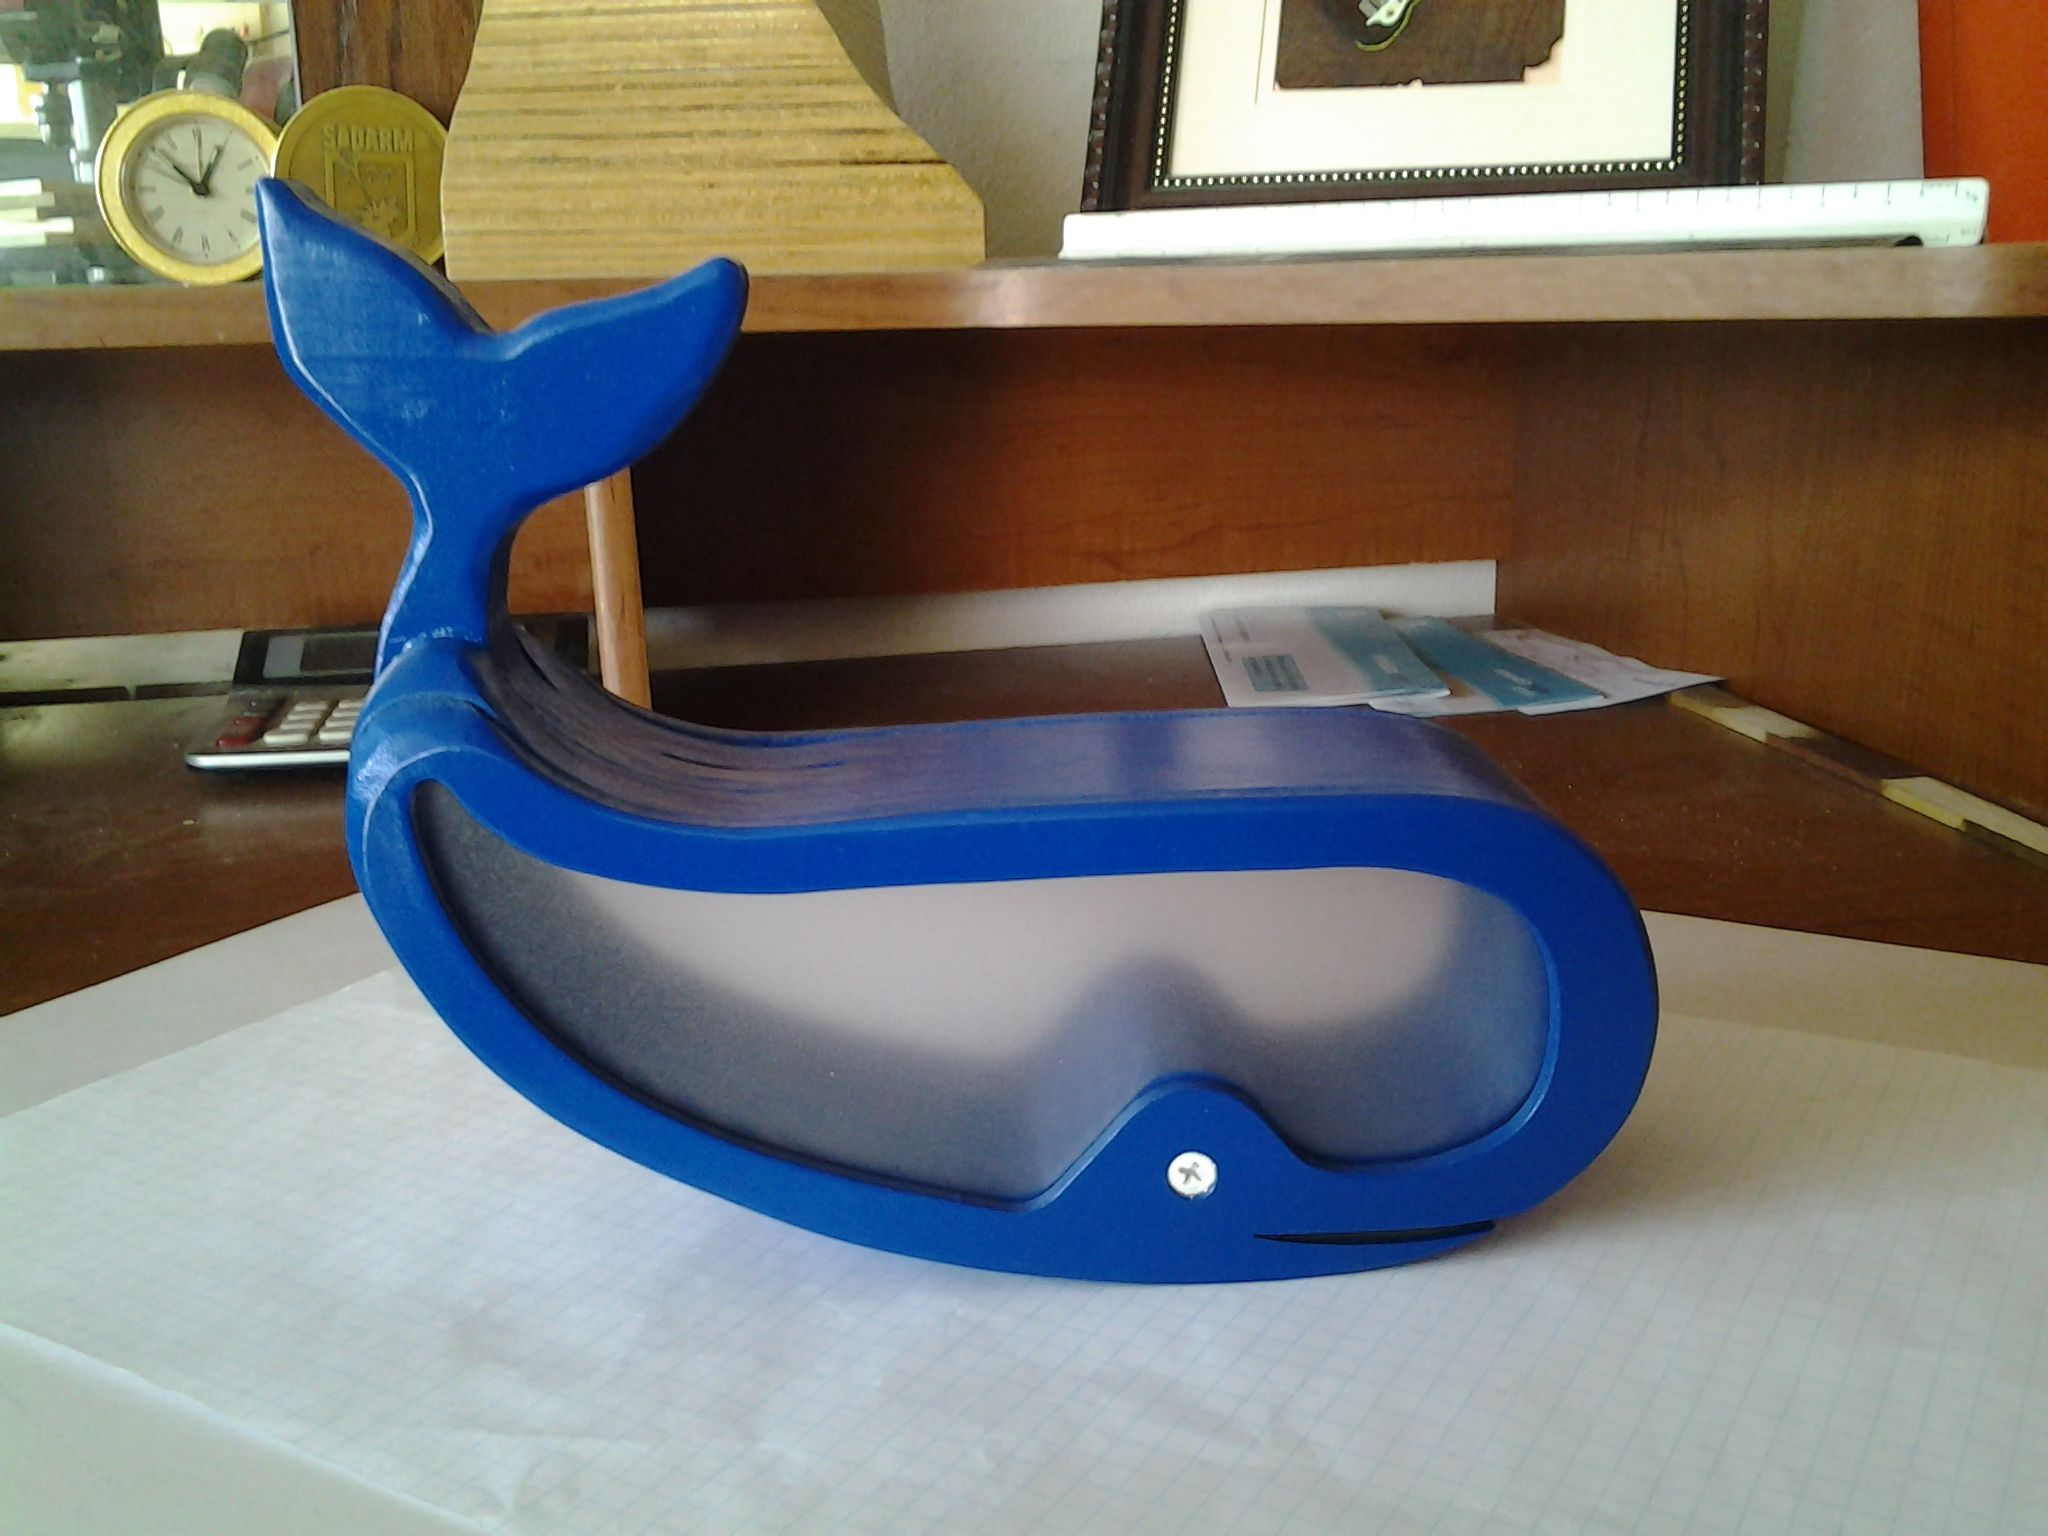 """Whale Bank - 9"""" x 6"""" x 4"""" coin bank. The eyeball is a screw which, when loosened, will allow the back to rotate to empty the bank."""